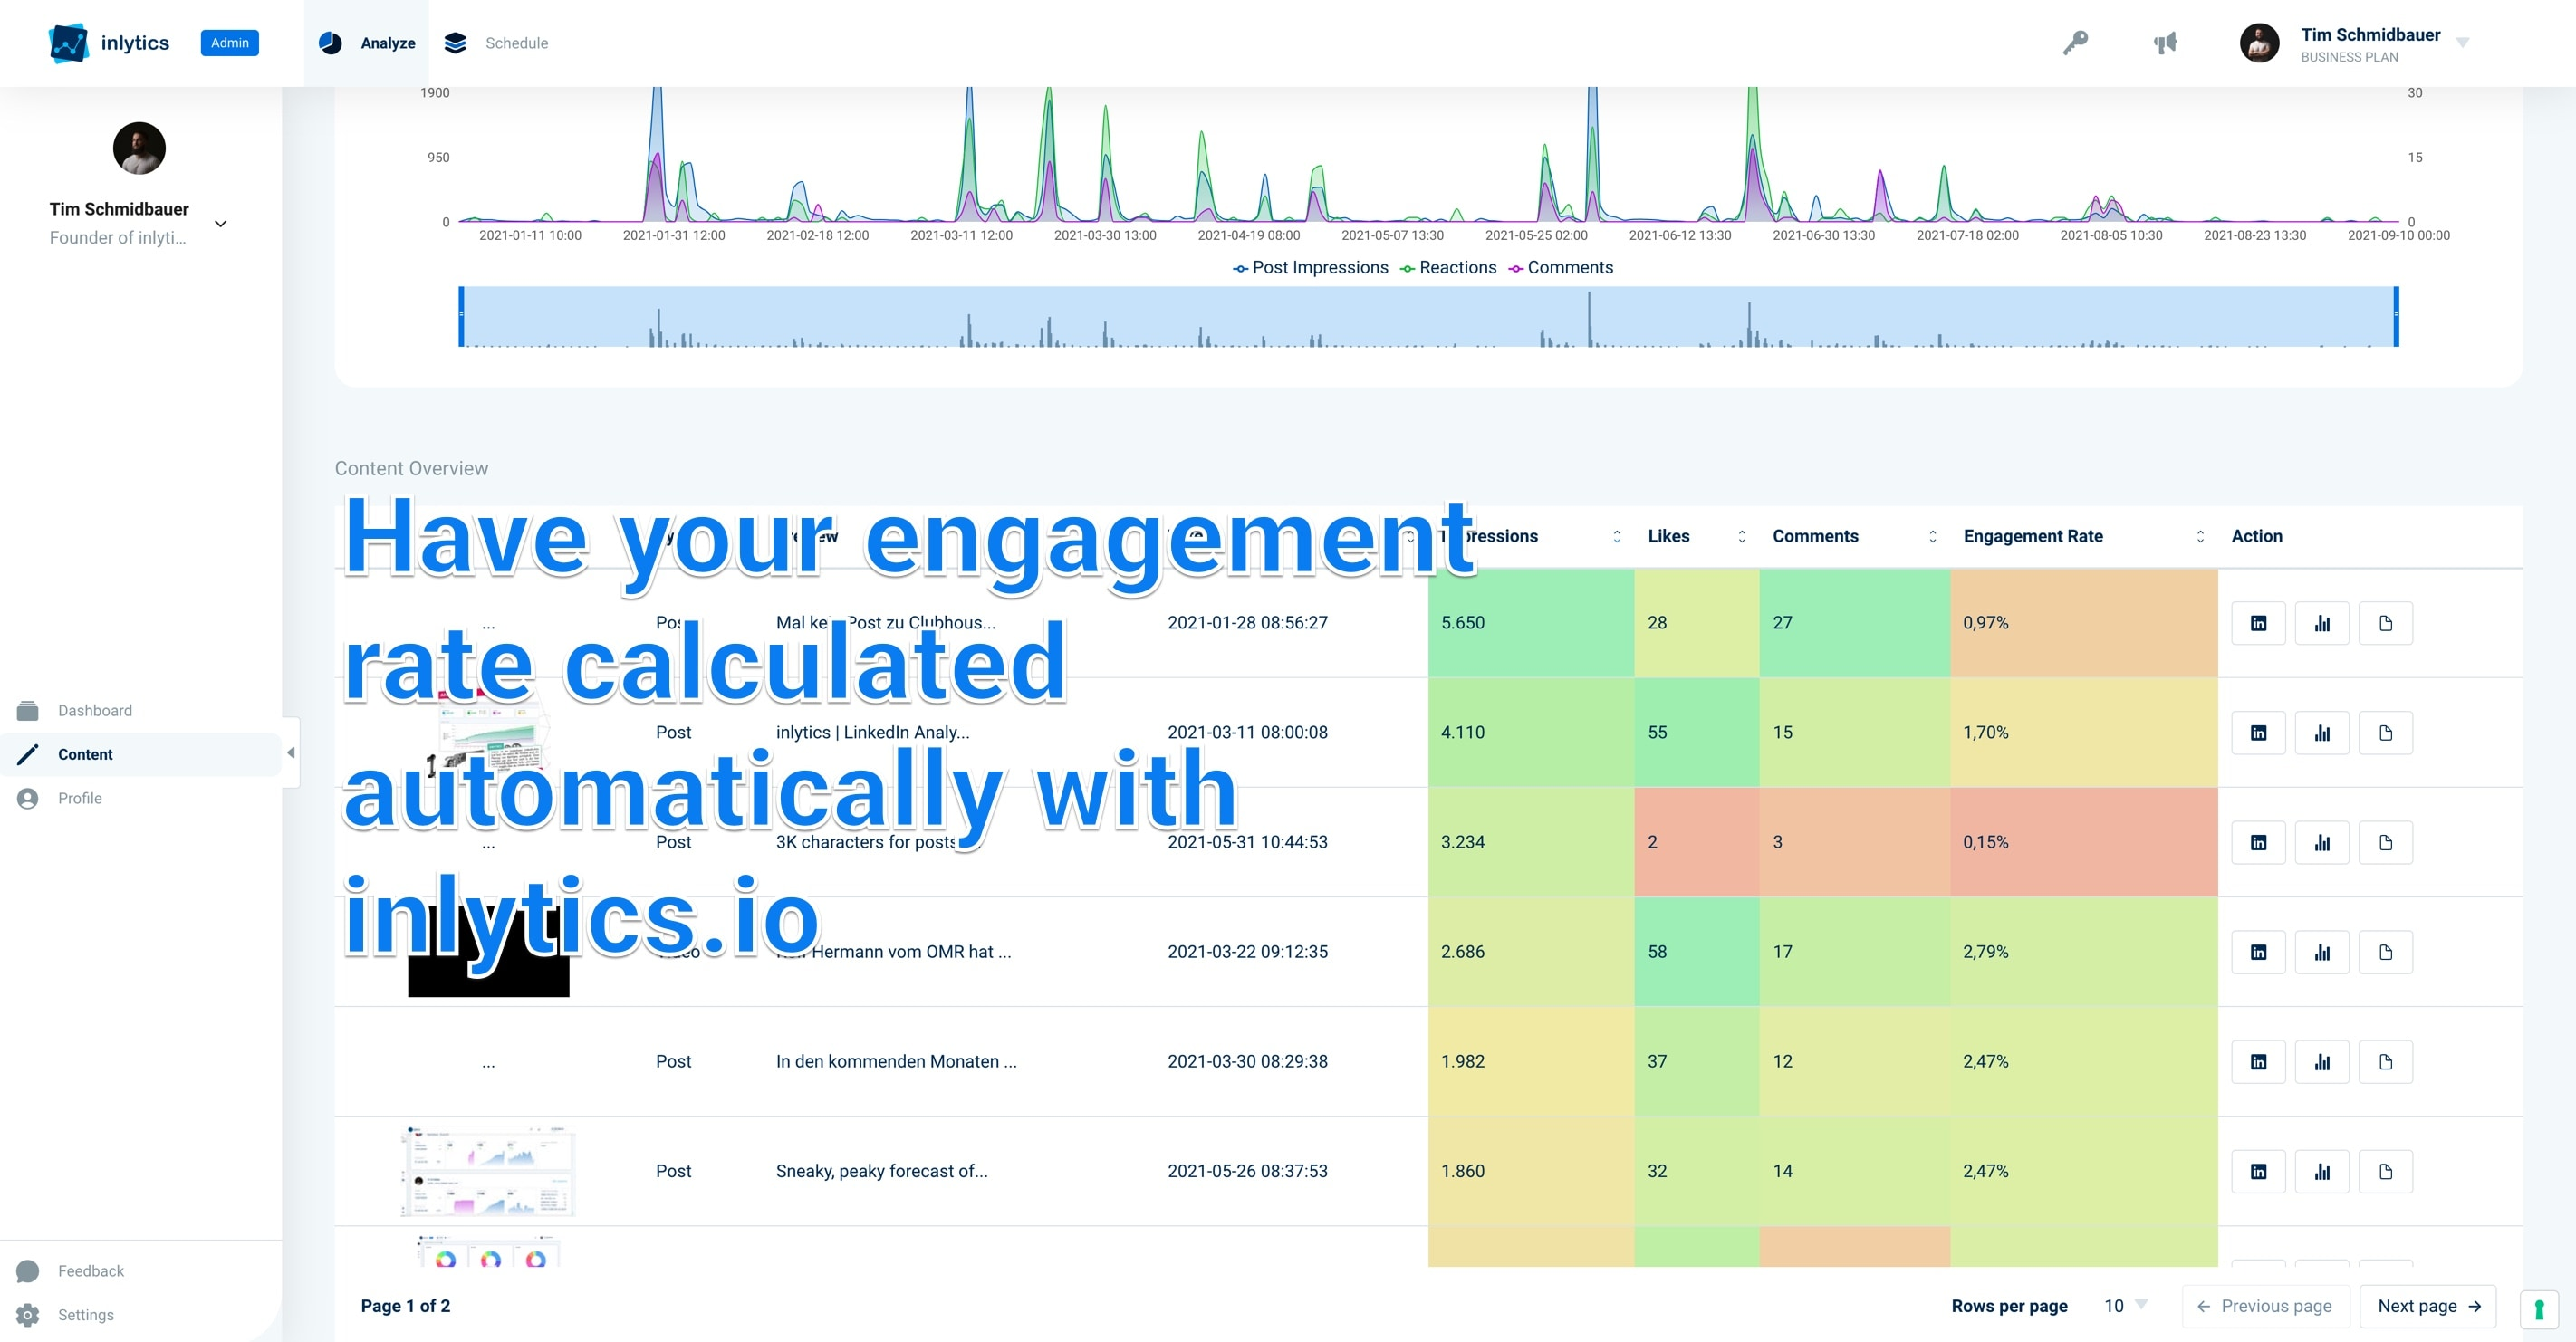 LinkedIn Engagement Rate automatically calculated using inlytics.io